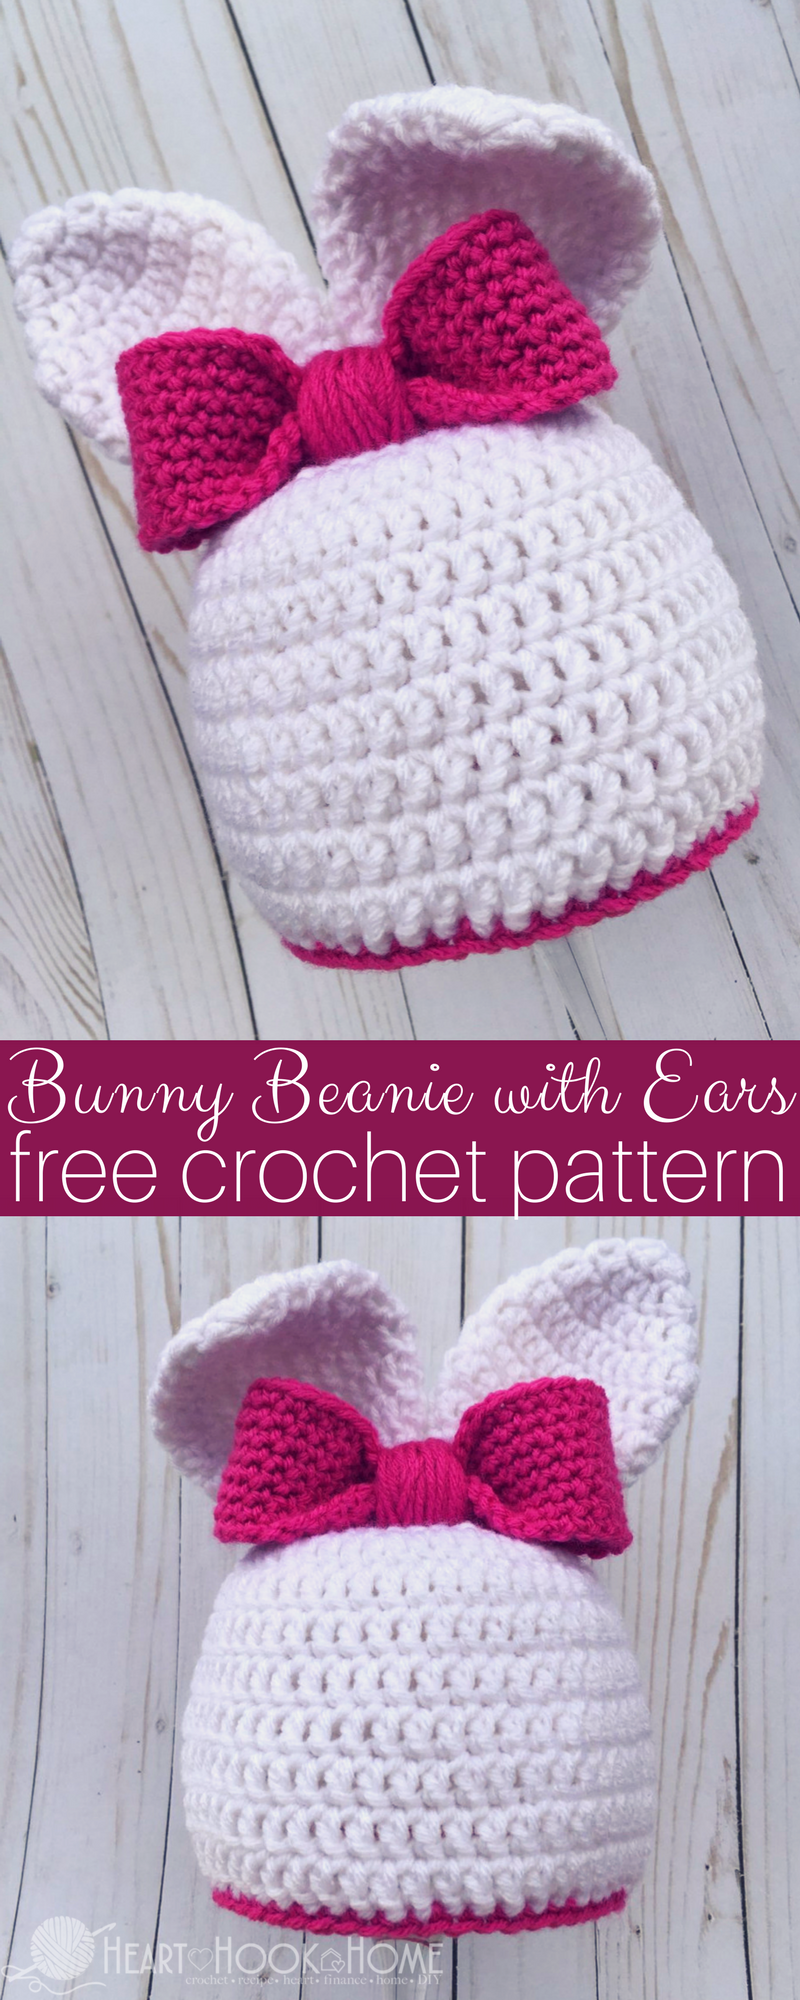 Bunny Beanie with Ears Free Crochet Pattern for Easter | süßer Hase ...